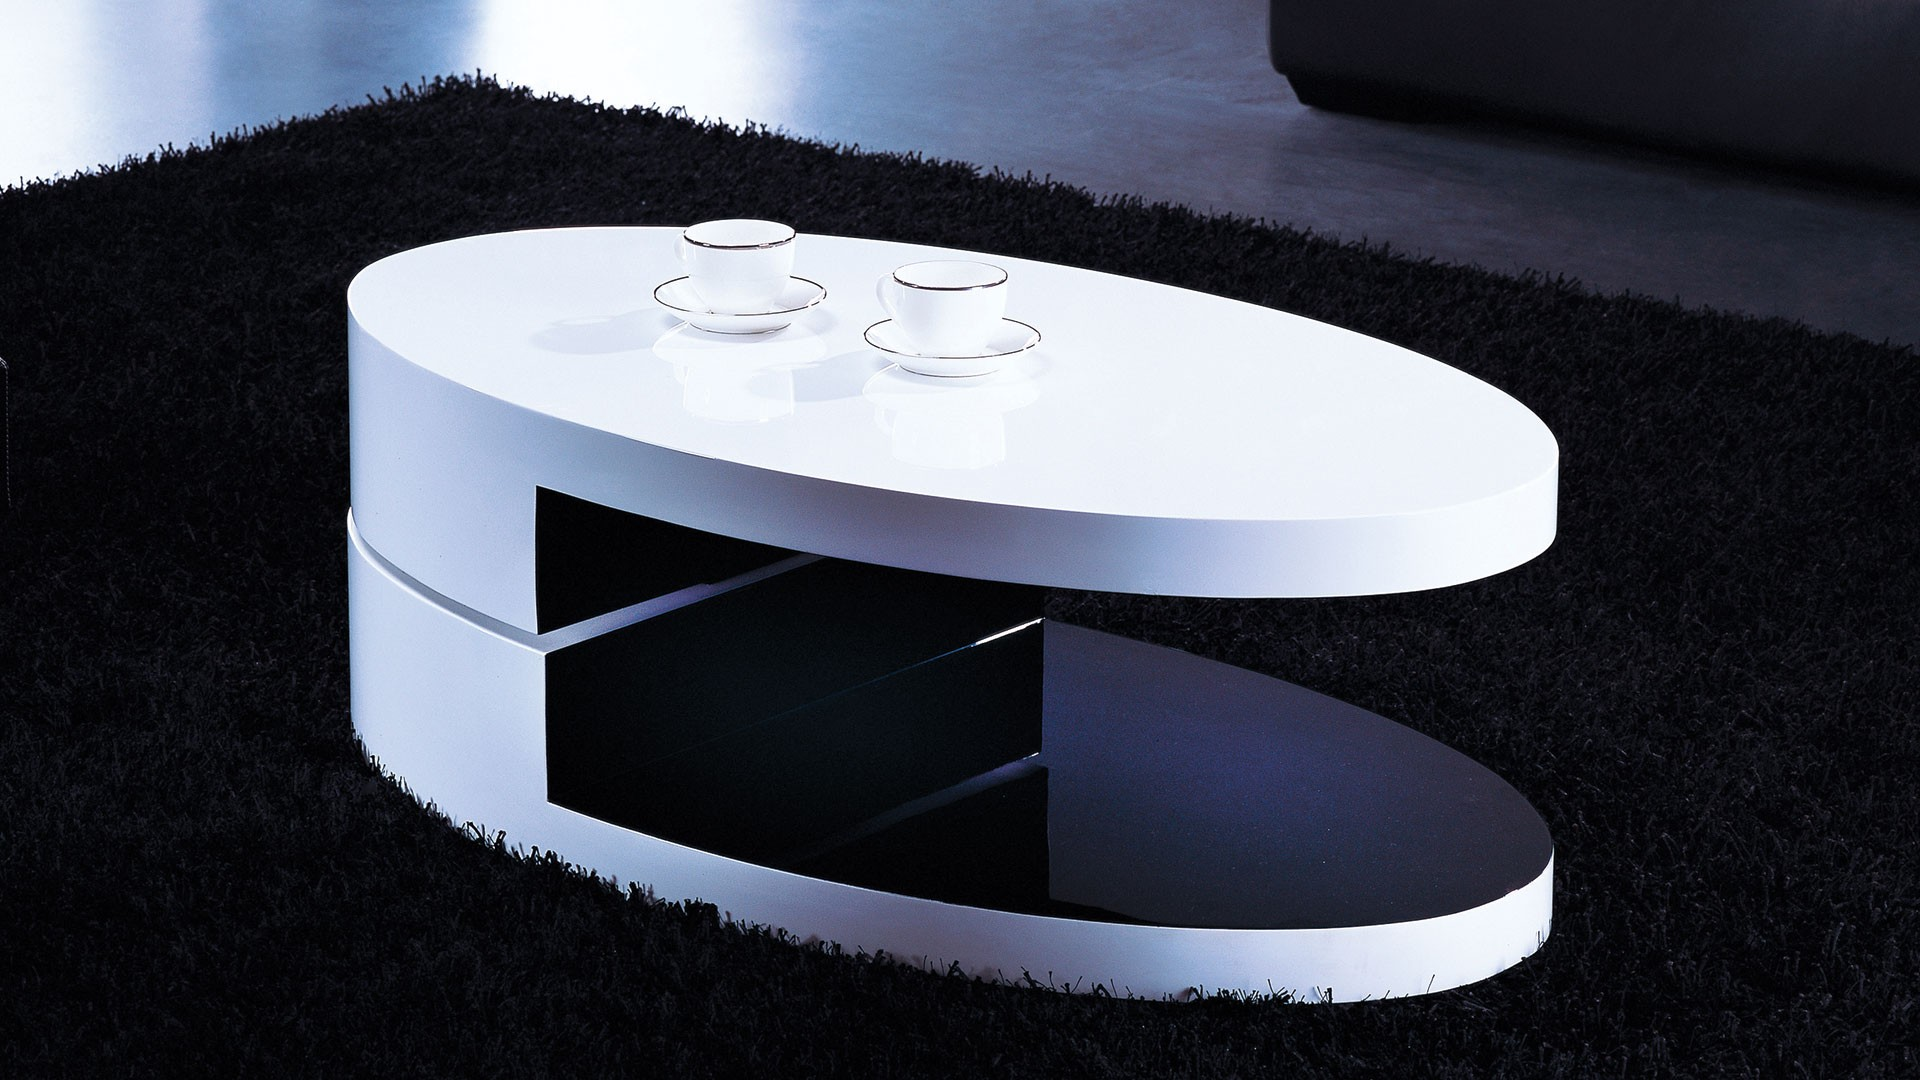 High Gloss White And Black Oval Coffee Table Worcester Massachusetts Ah8435